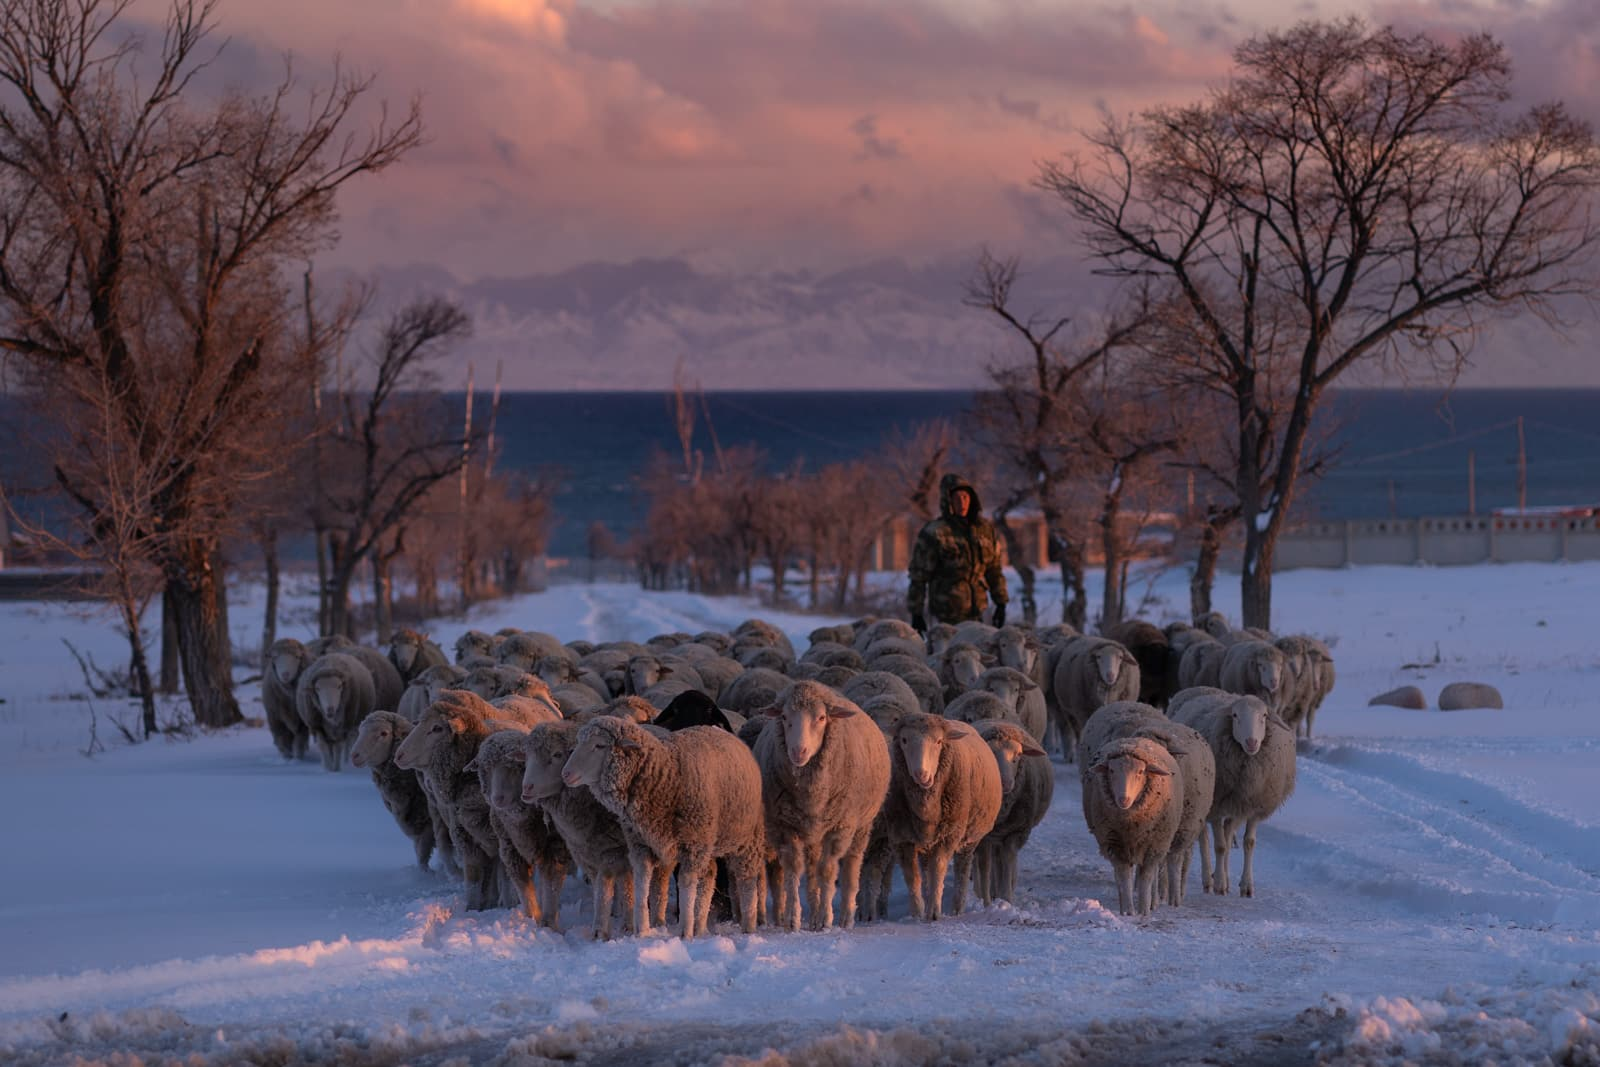 Man herding sheep at sunset in Kyrgyzstan